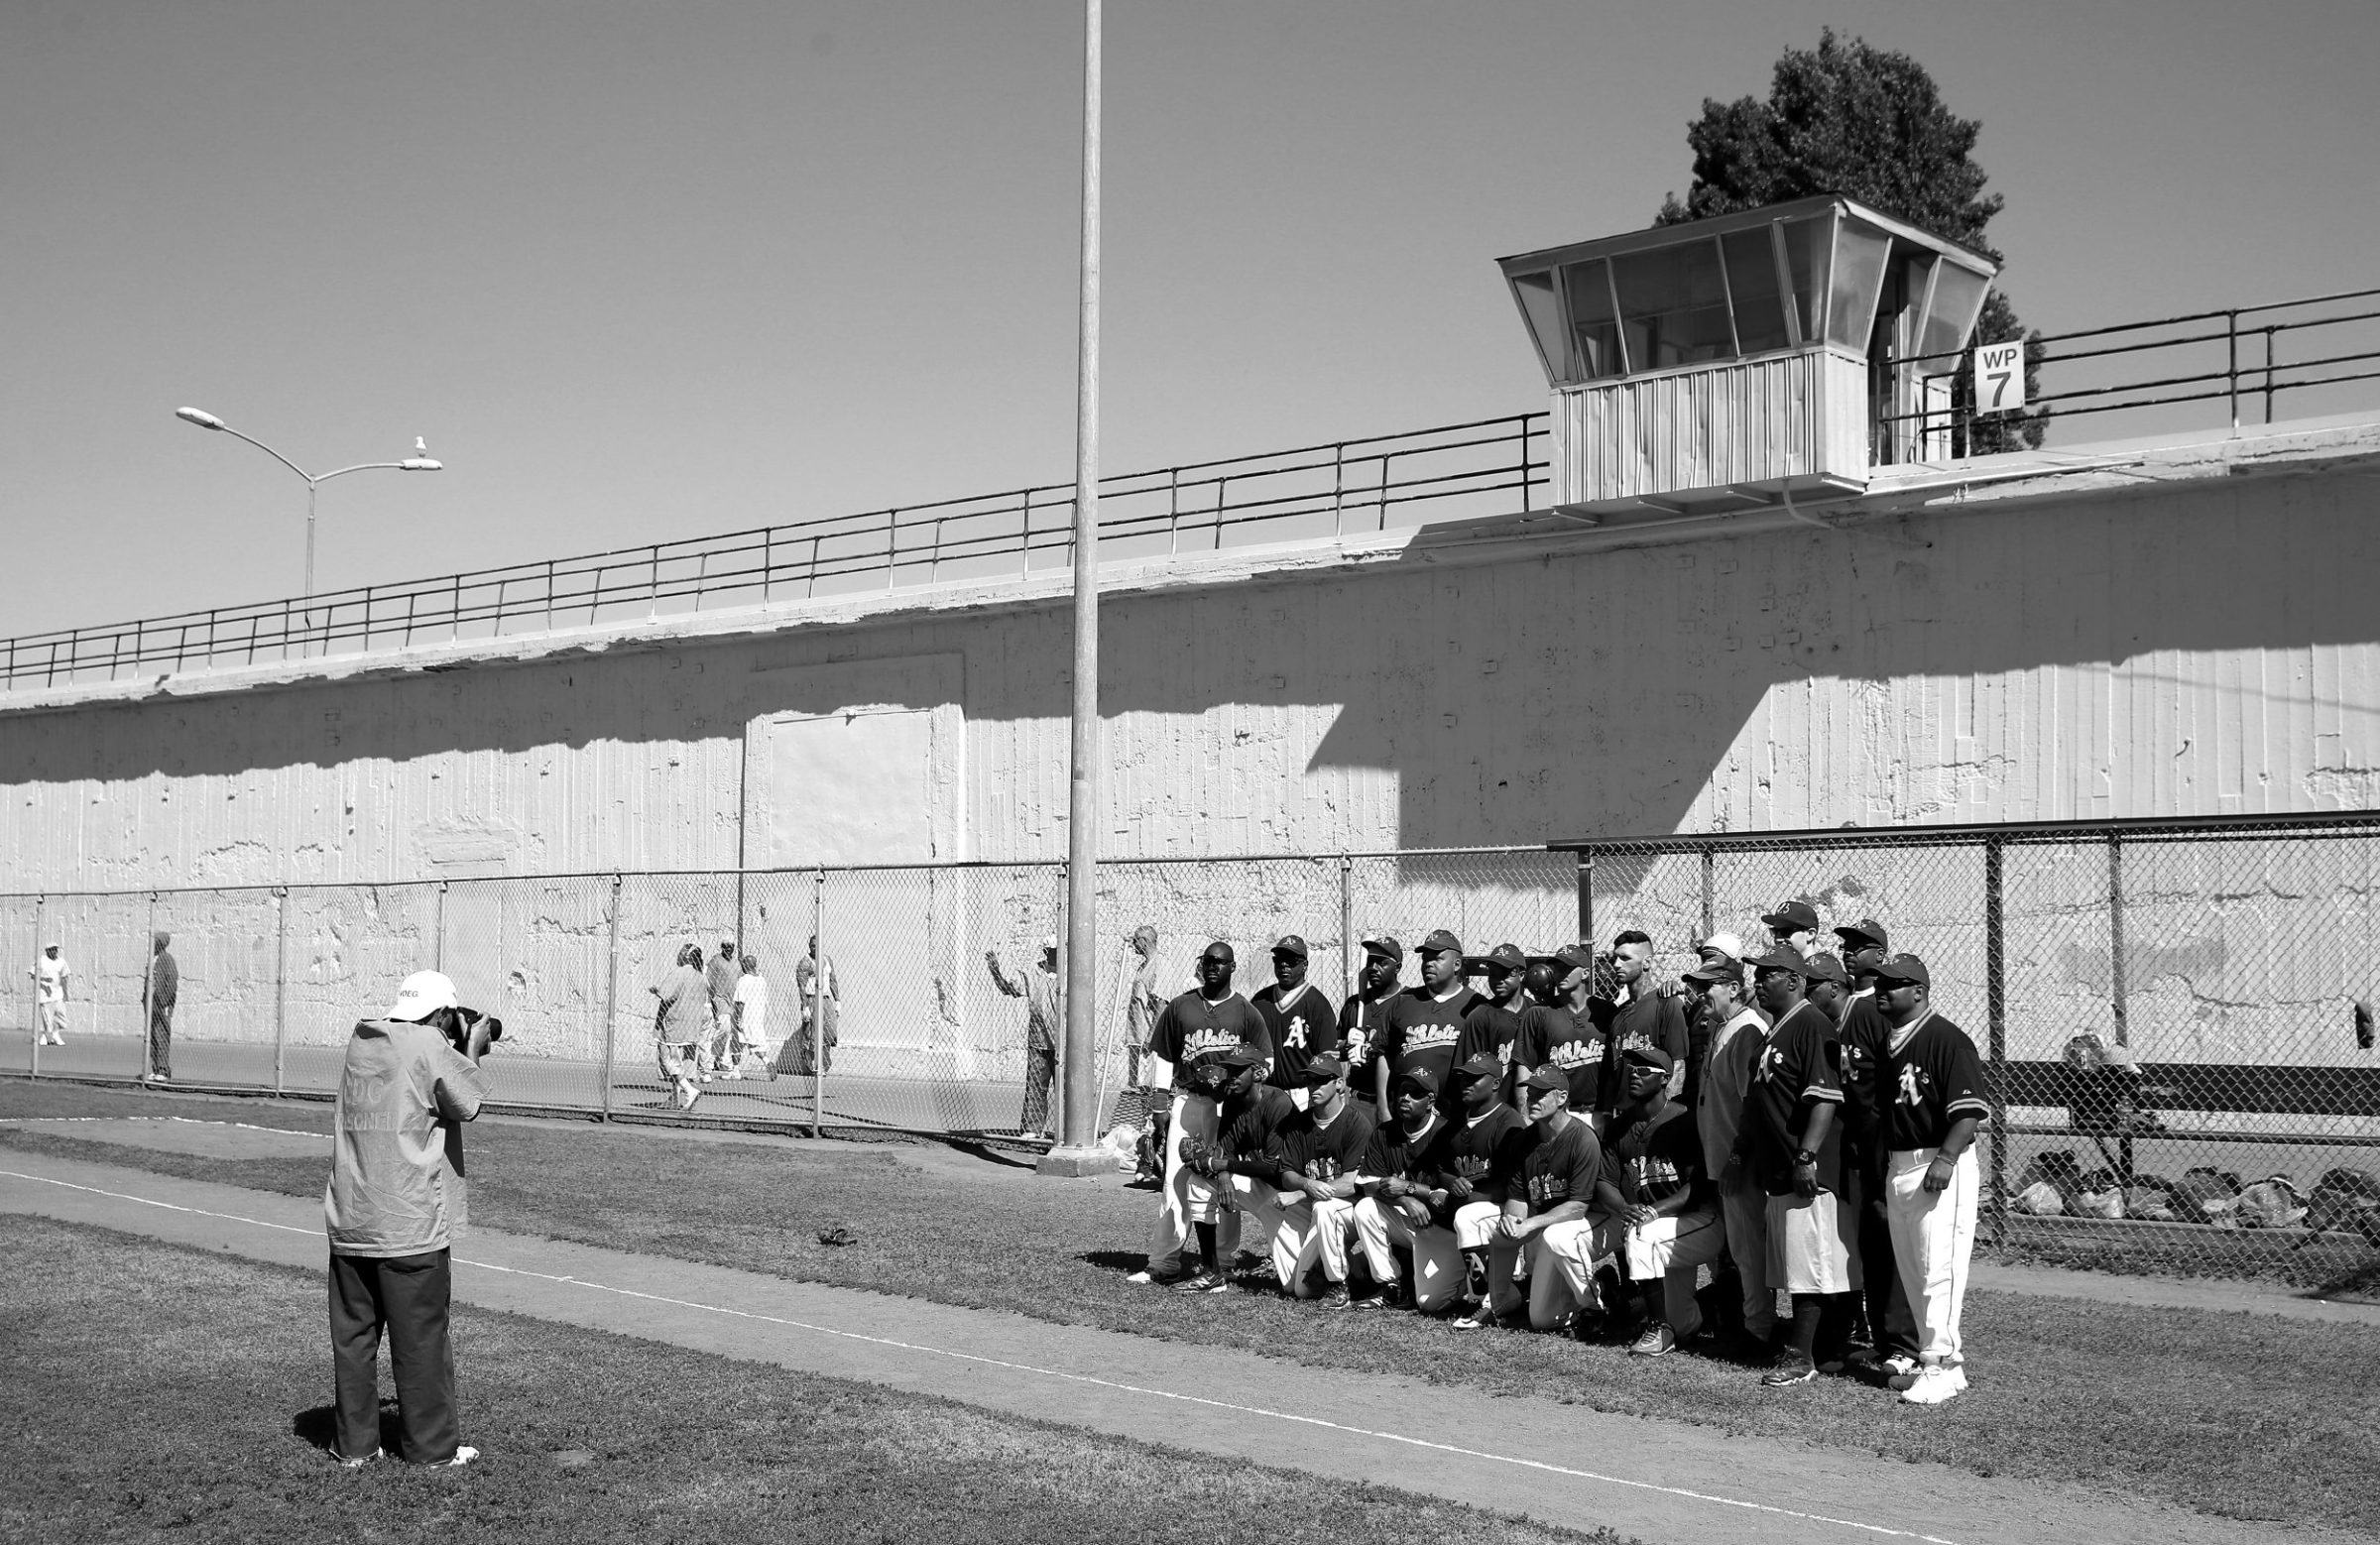 The San Quentin Athletics pose for a team photo for the prison newspaper before their game against Club Mexico on April 29, 2017 in San Quentin, California.